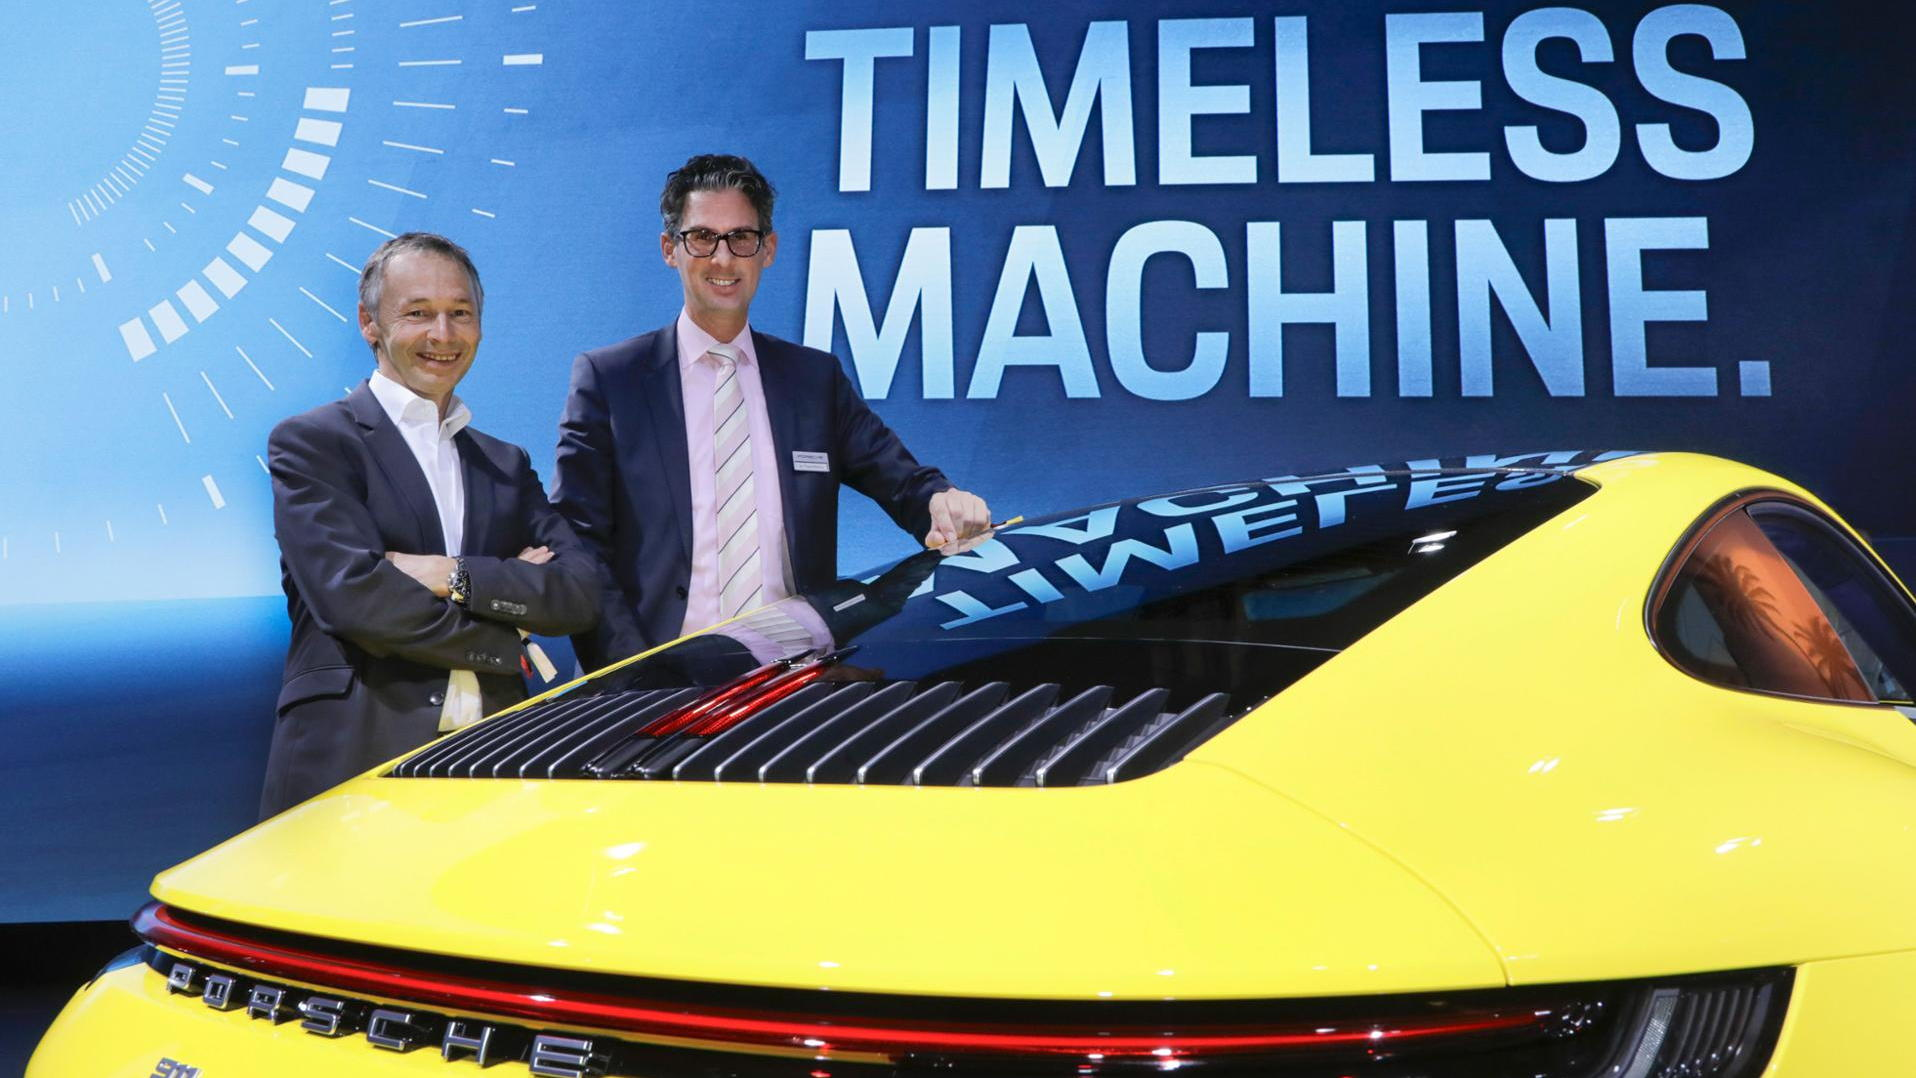 August Achleitner (left) hand over Porsche 911 lead engineer role to Frank-Steffen Walliser (right)